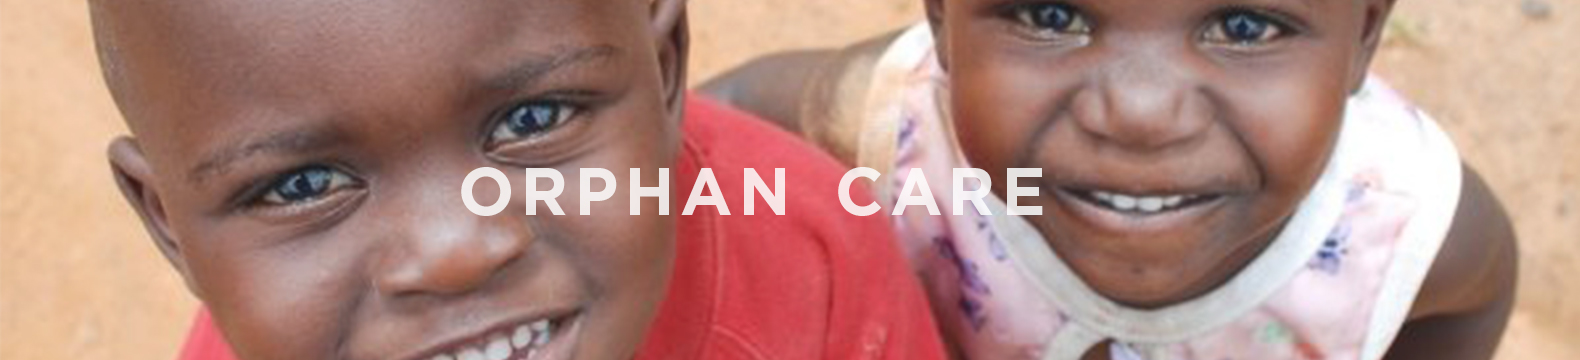 God Is Calling You to Care for Orphans